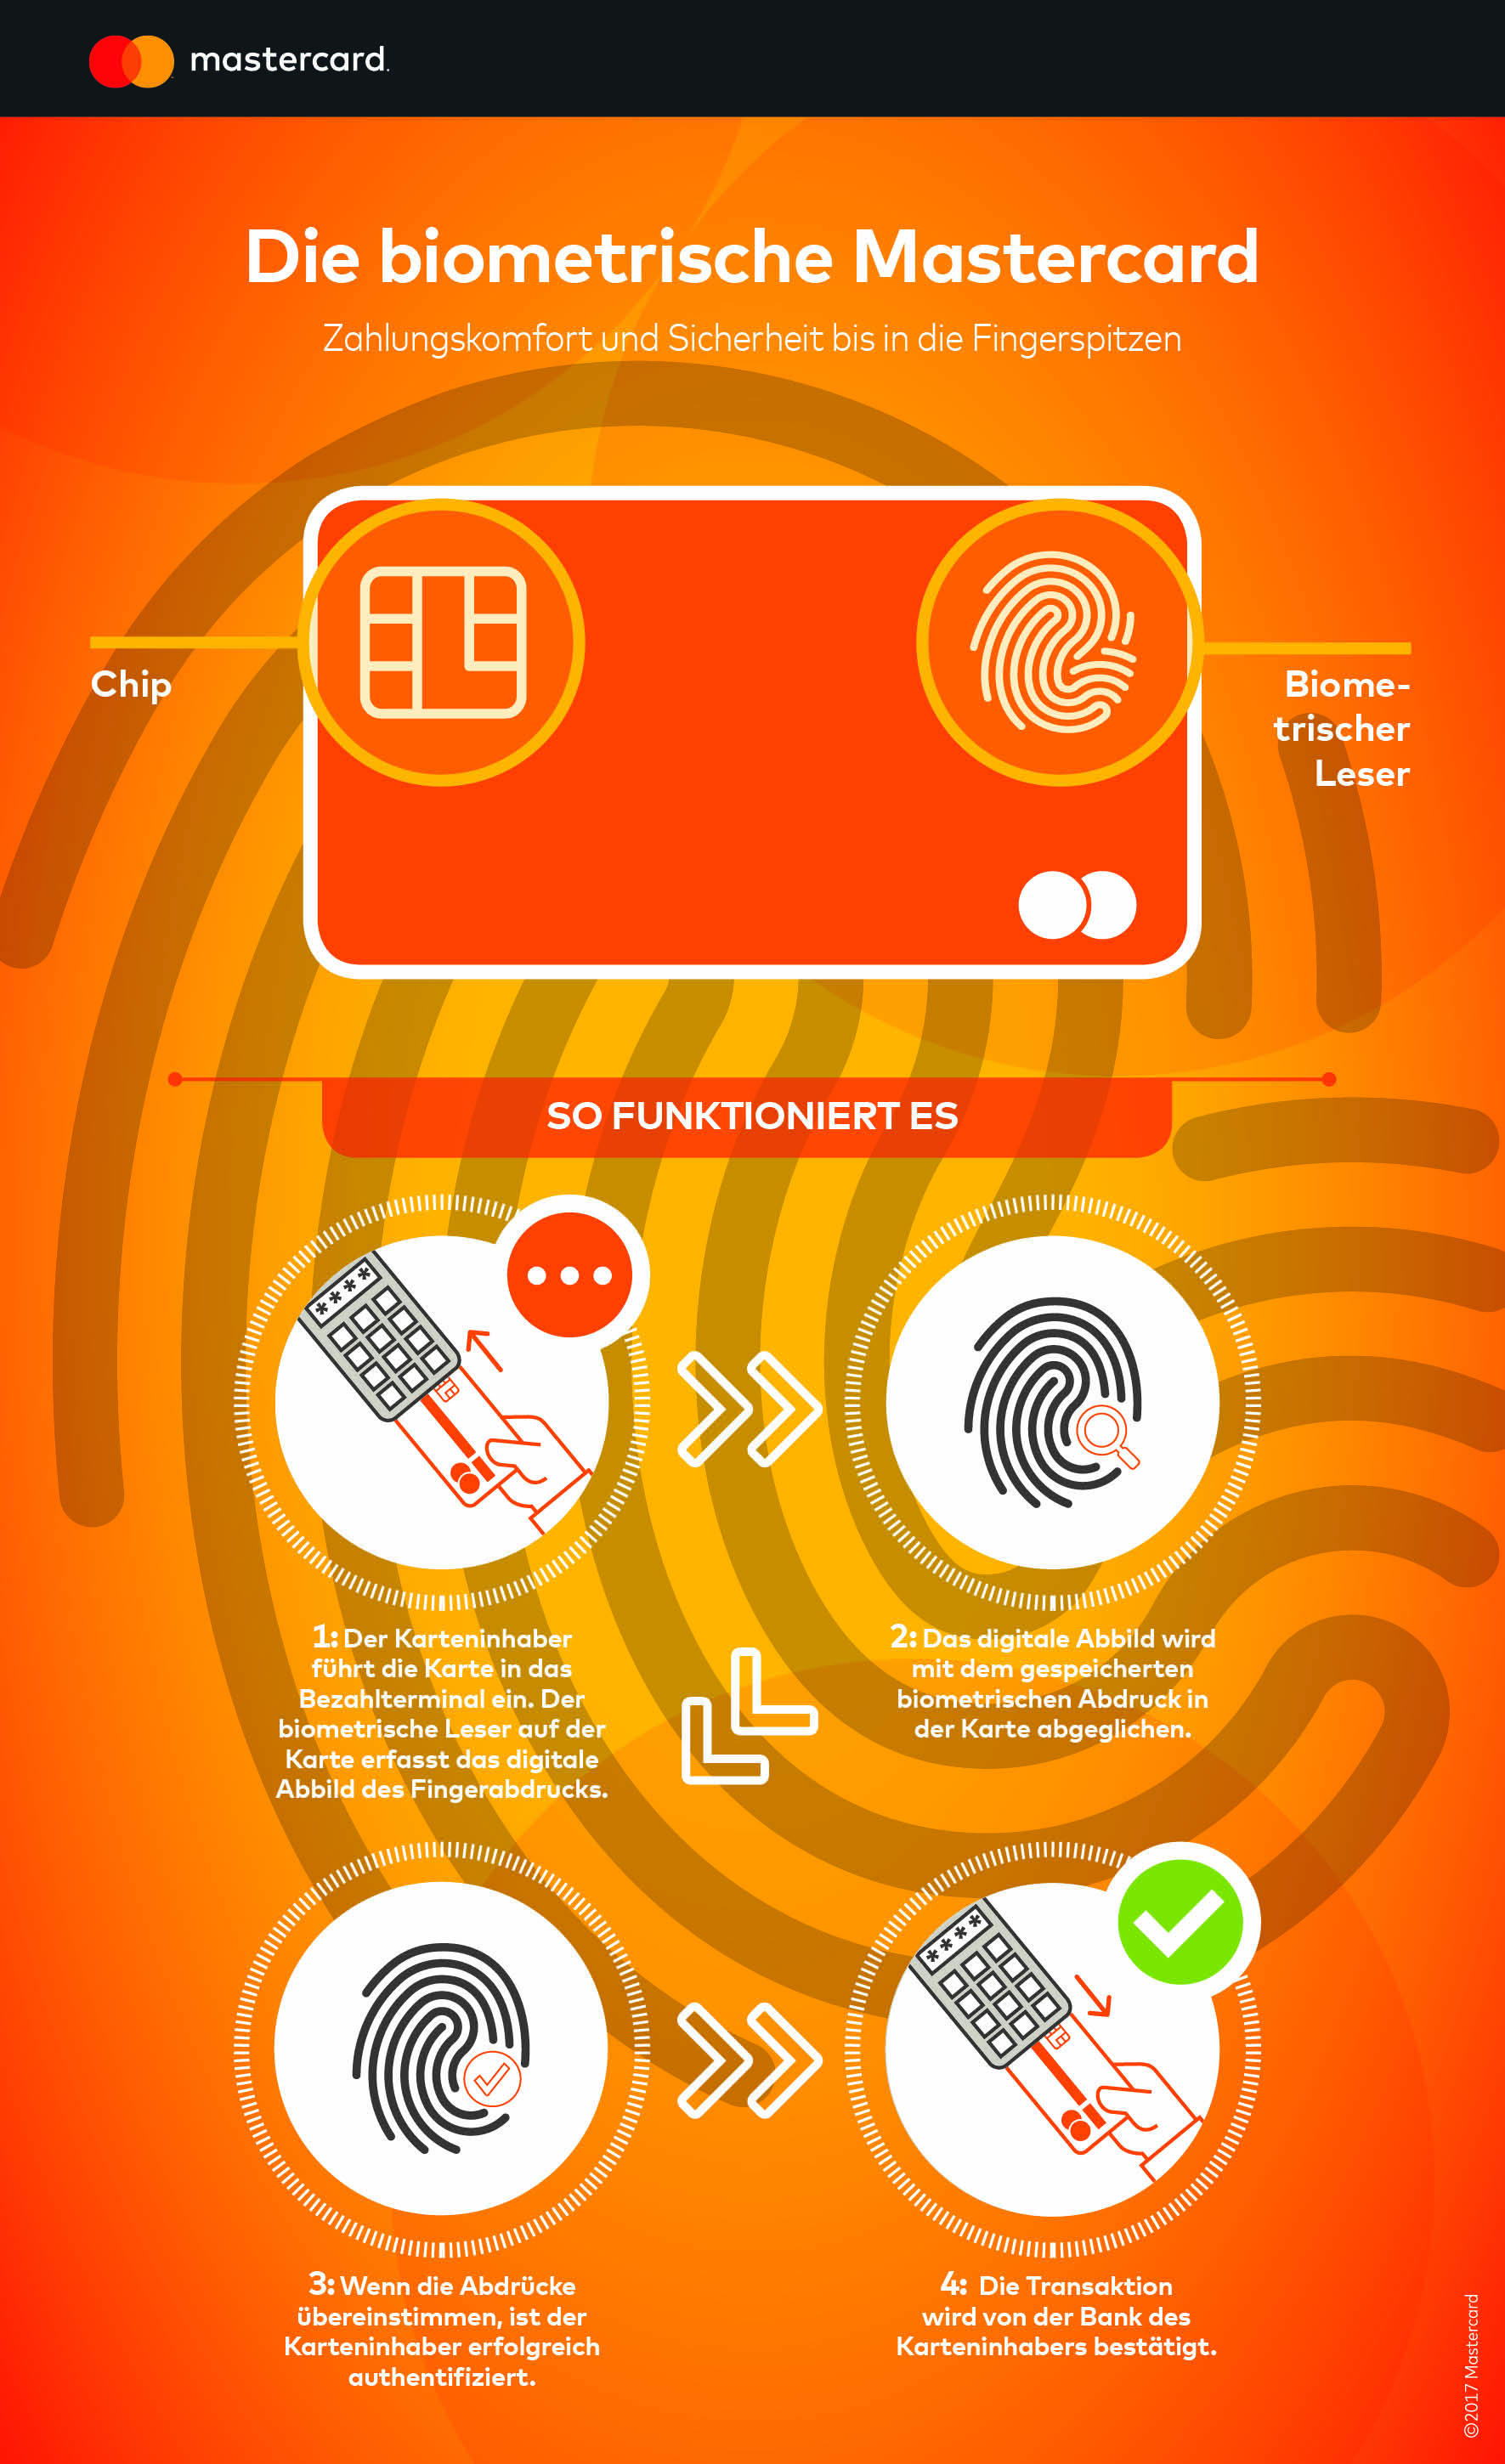 20170413_Mastercard_Biometric_Card_infographic_DE_V2